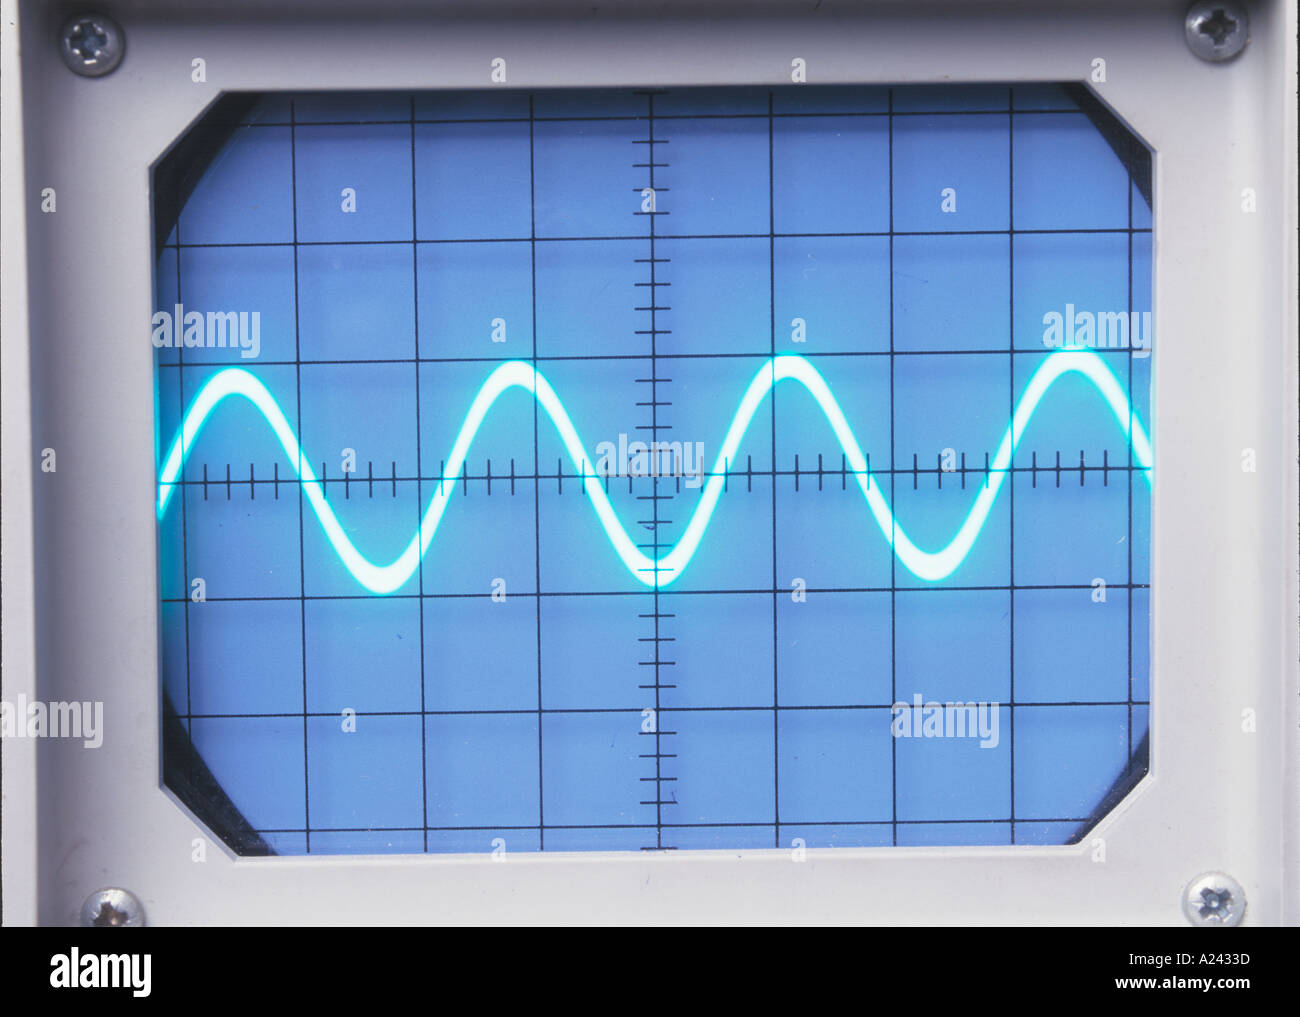 Old Oscilloscope Screen : A sine wave of frequency f on an oscilloscope screen see